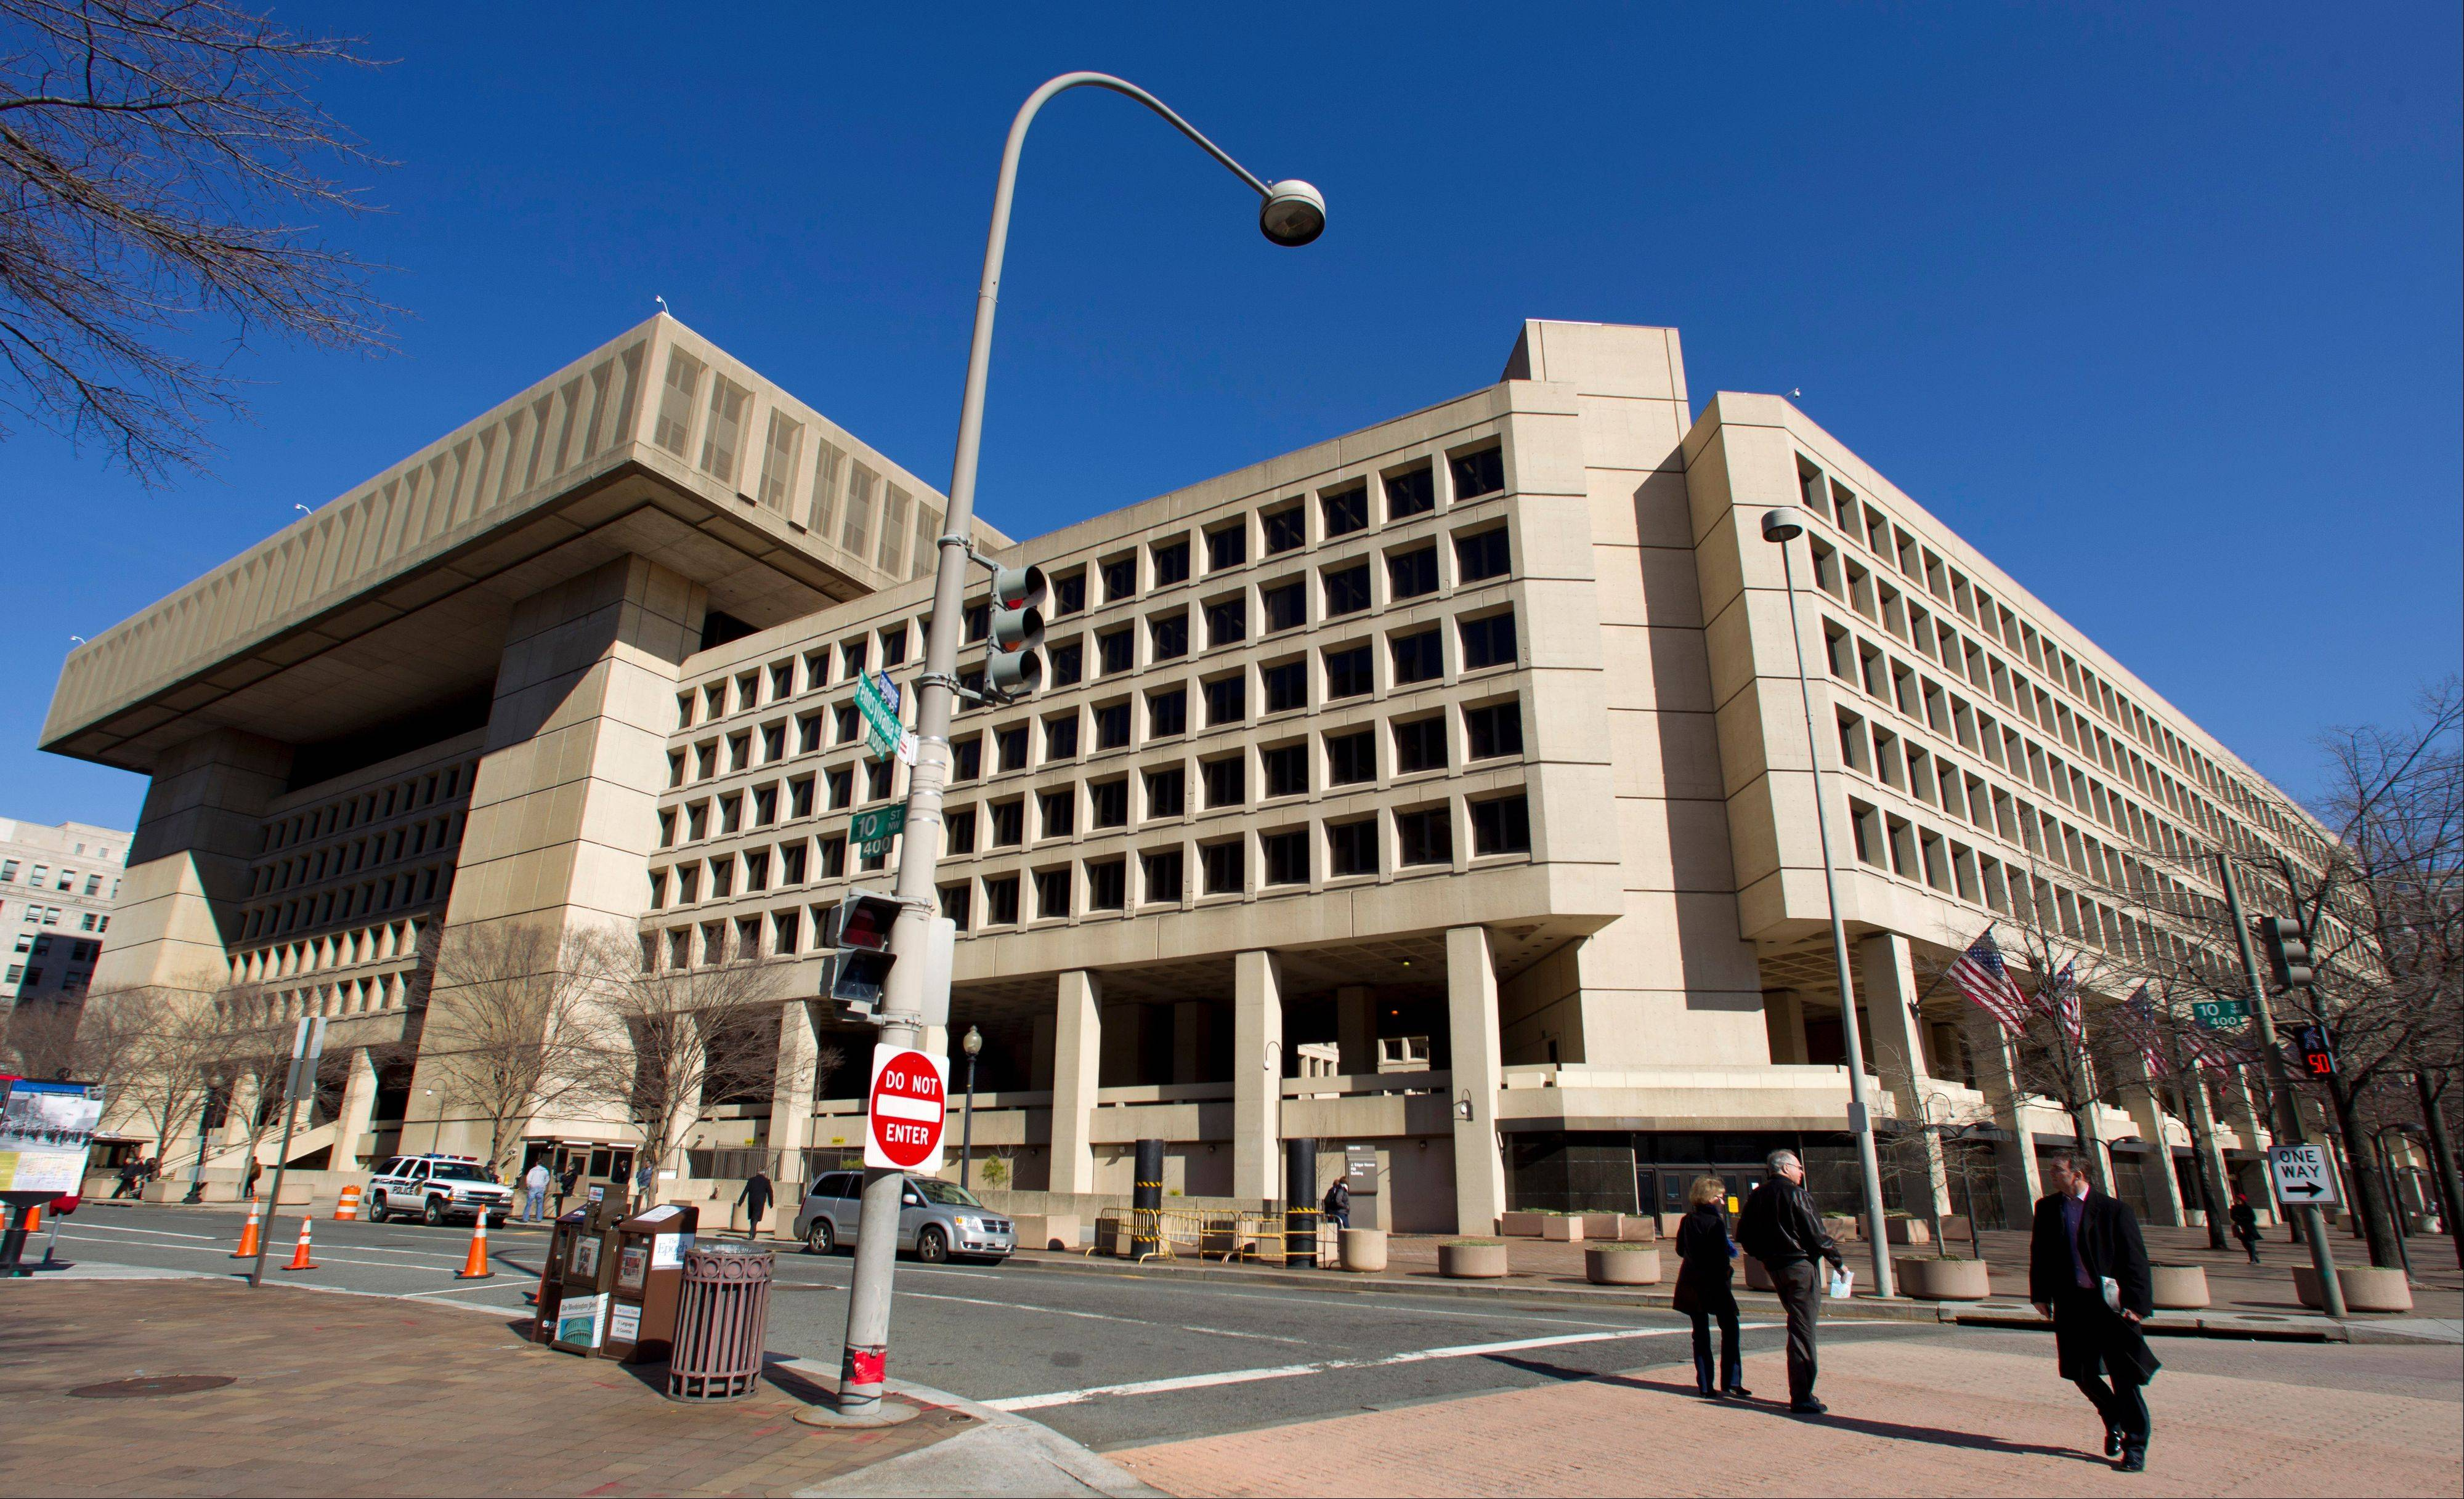 Associated PressThe Federal Bureau of Investigation (FBI) headquarters in Washington. Just six blocks from the White House, the FBI's hulking headquarters overlooking Pennsylvania Avenue has long been the government building everyone loves to hate.